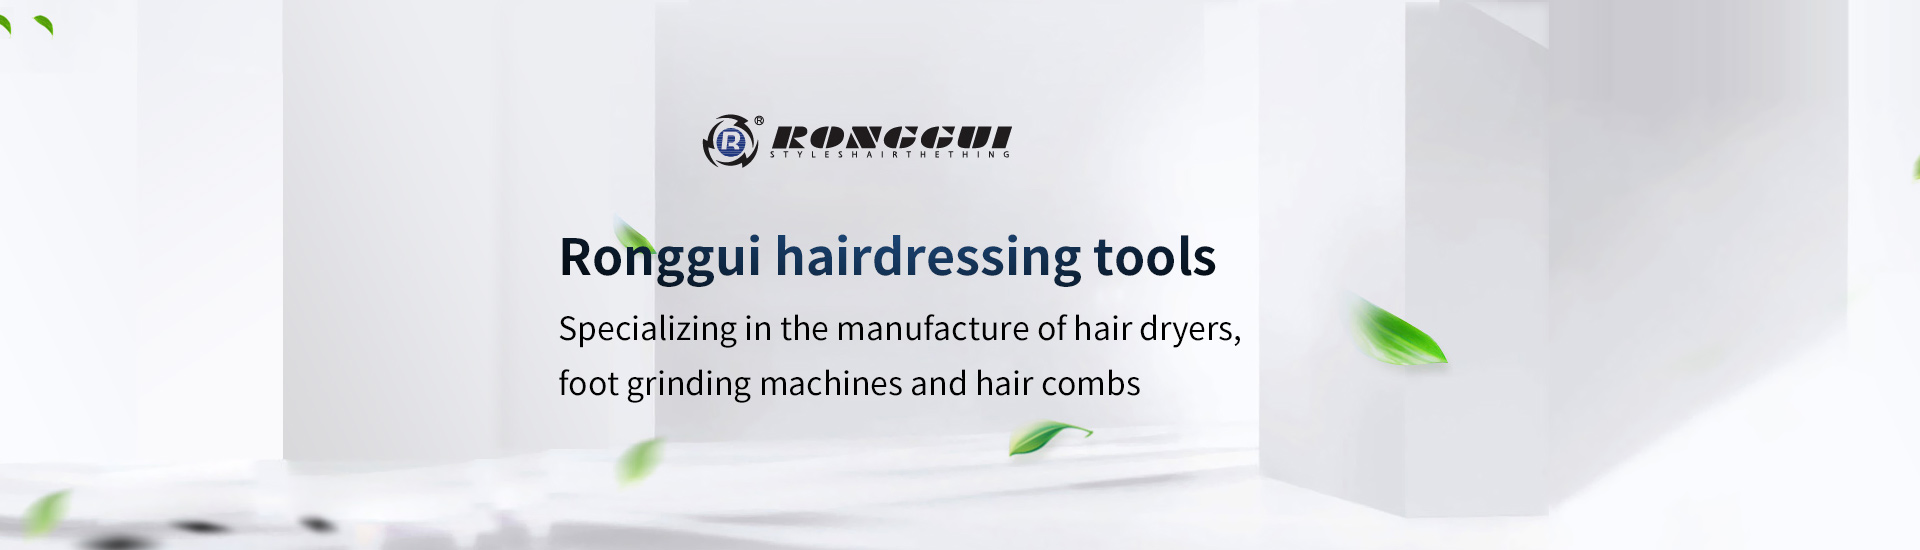 hair dryer repair knowledge-company news-wenzhou ronggui haircutting tool  factory